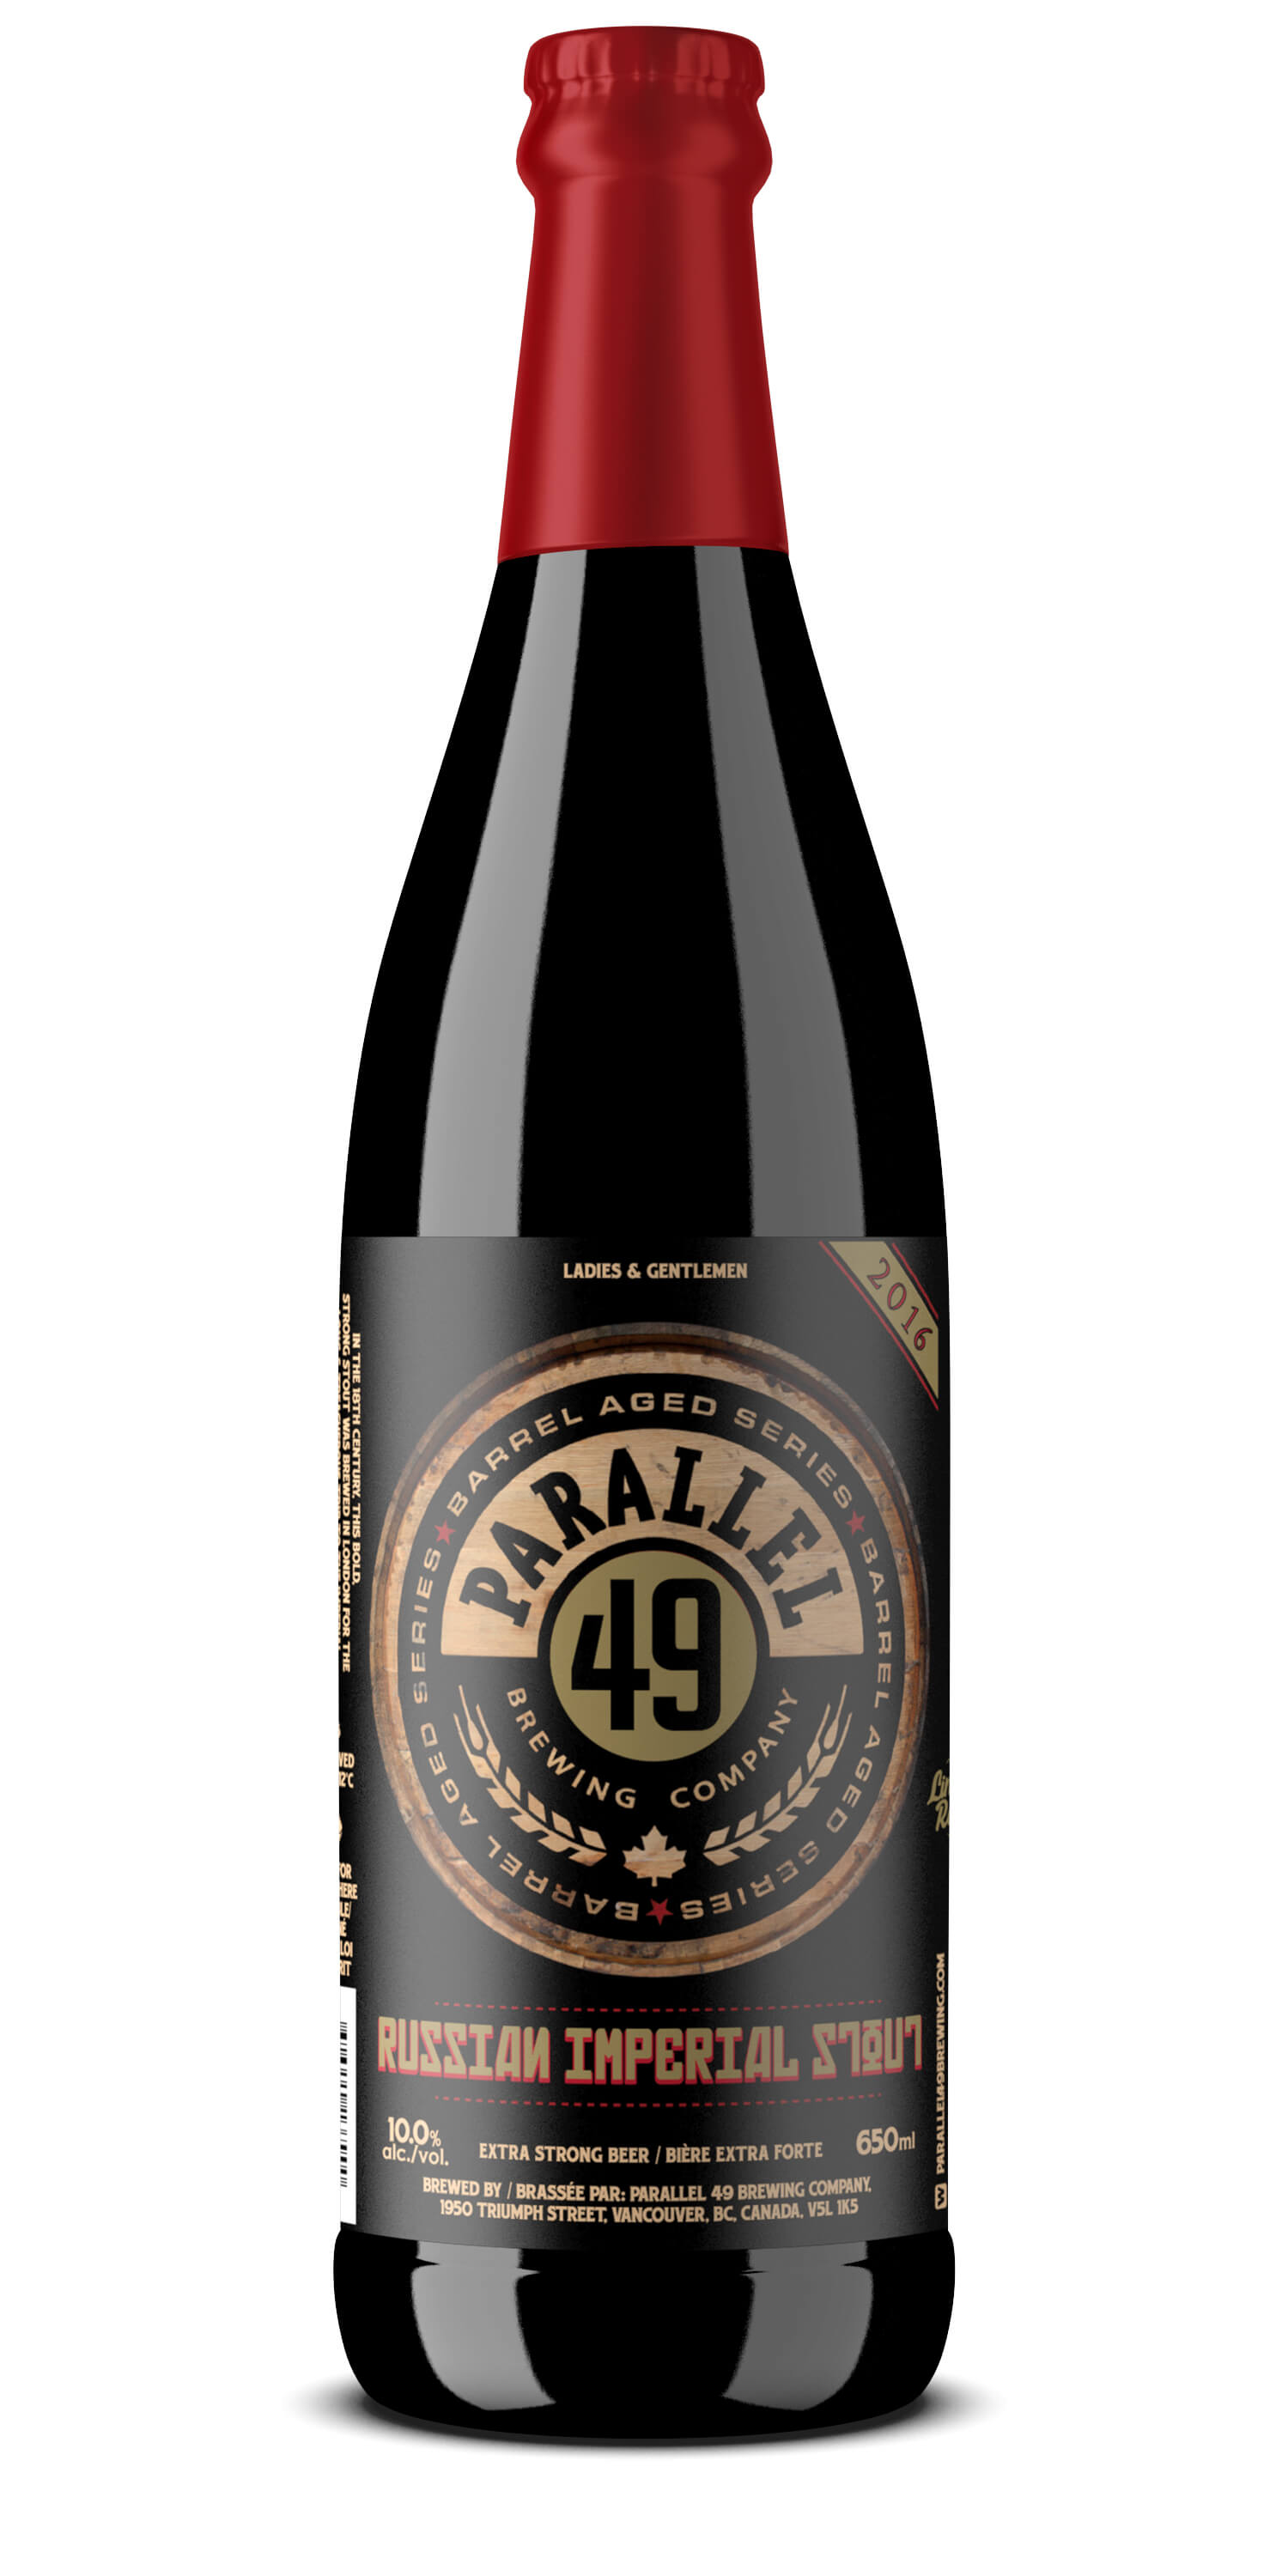 OUTSHINERY-Parallel49-RussianImperialStout2016.jpg